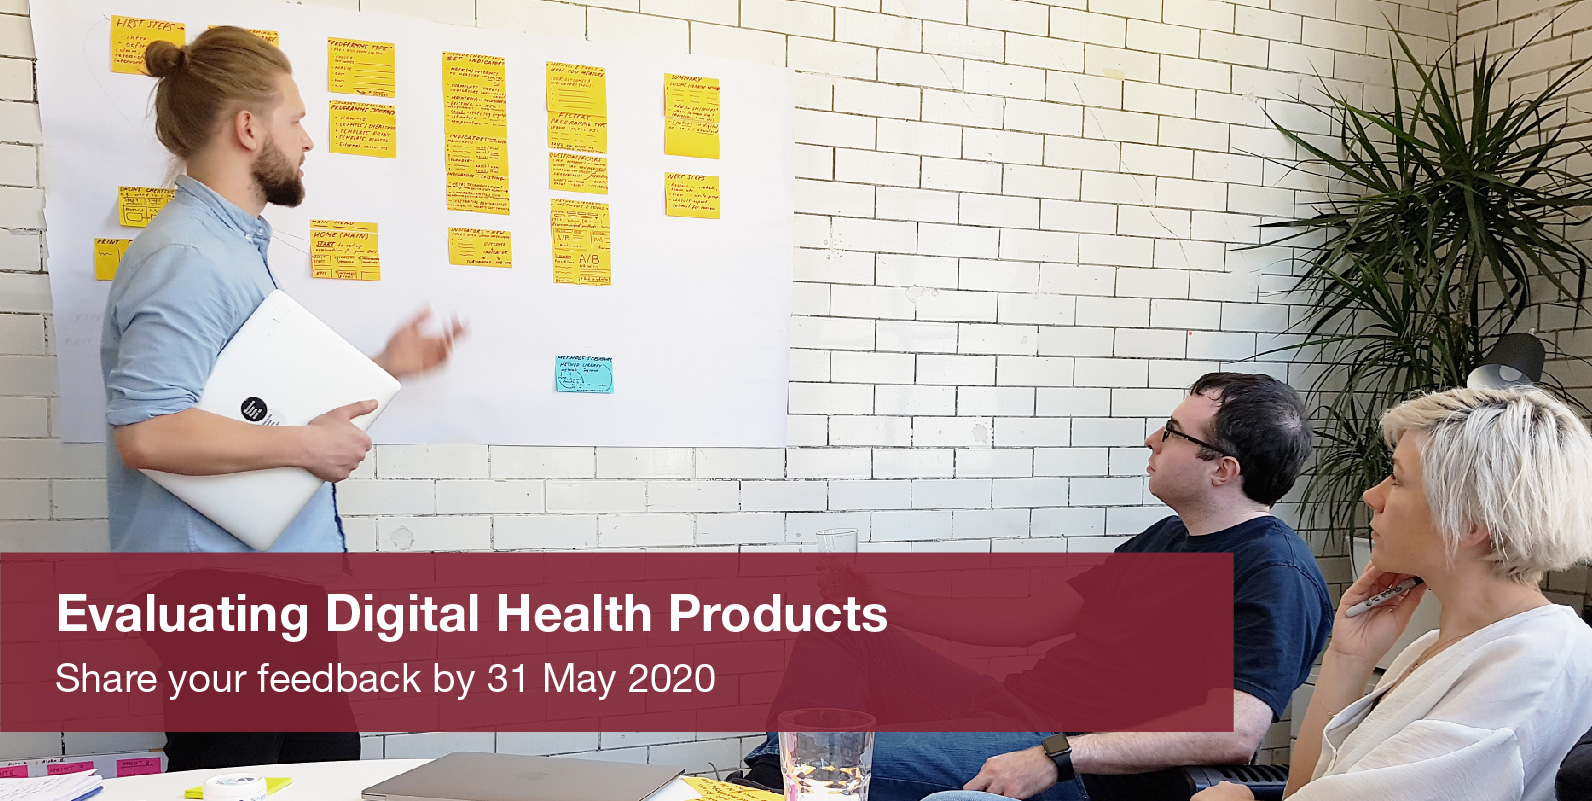 Three people looking at a wall of card. There is banner across the photo that says 'Evaluating Digital Health Products. Share your feedback by 31st May 2020'.